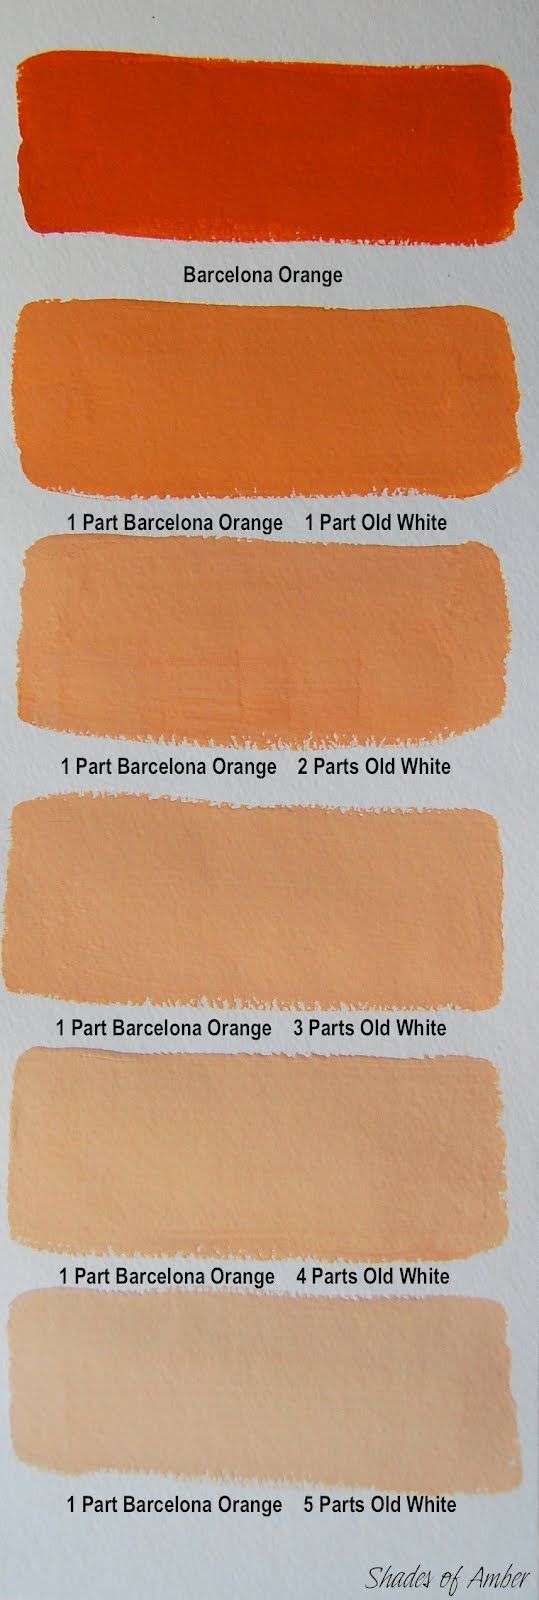 Shades Of Amber Chalk Paint Color Theory Barcelona